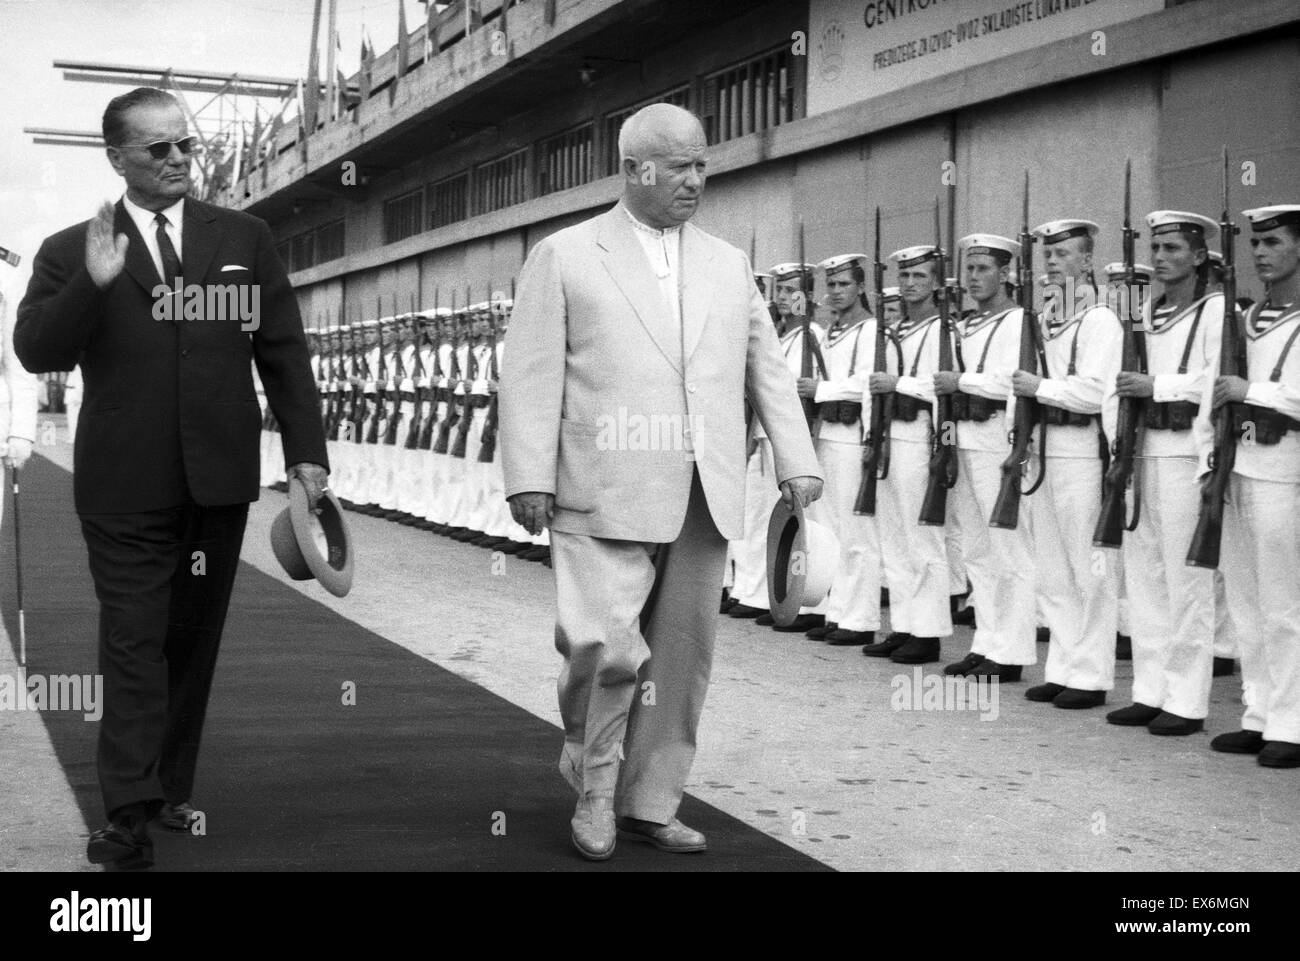 President Tito of Yugoslavia with Russian leader Nikita Khrushchev 1953 - Stock Image